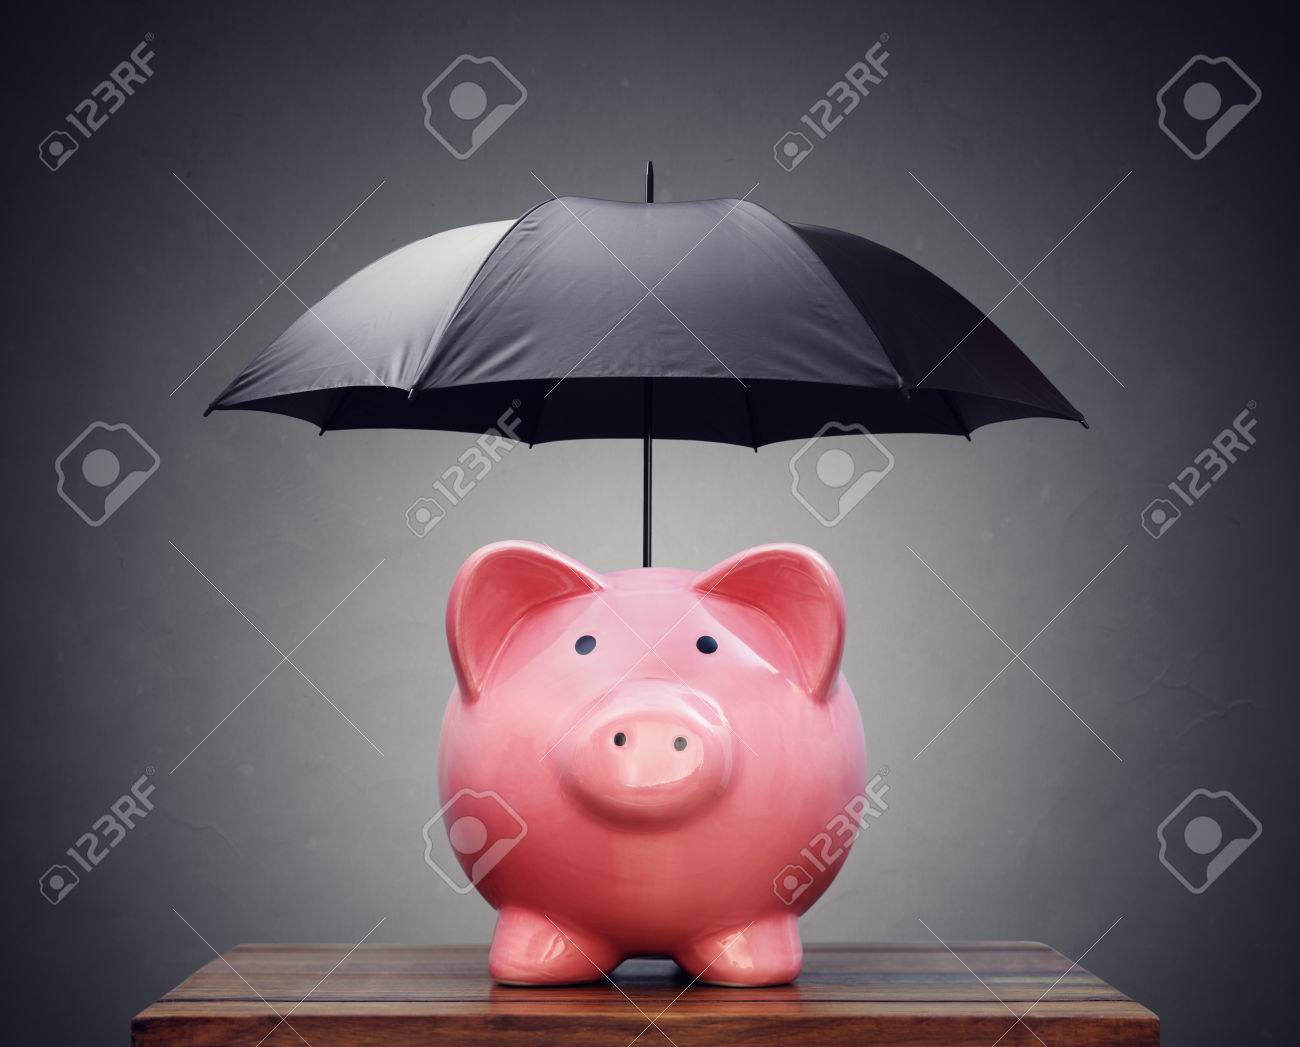 Piggy bank with umbrella concept for finance insurance, protection, safe investment or banking Standard-Bild - 54427862